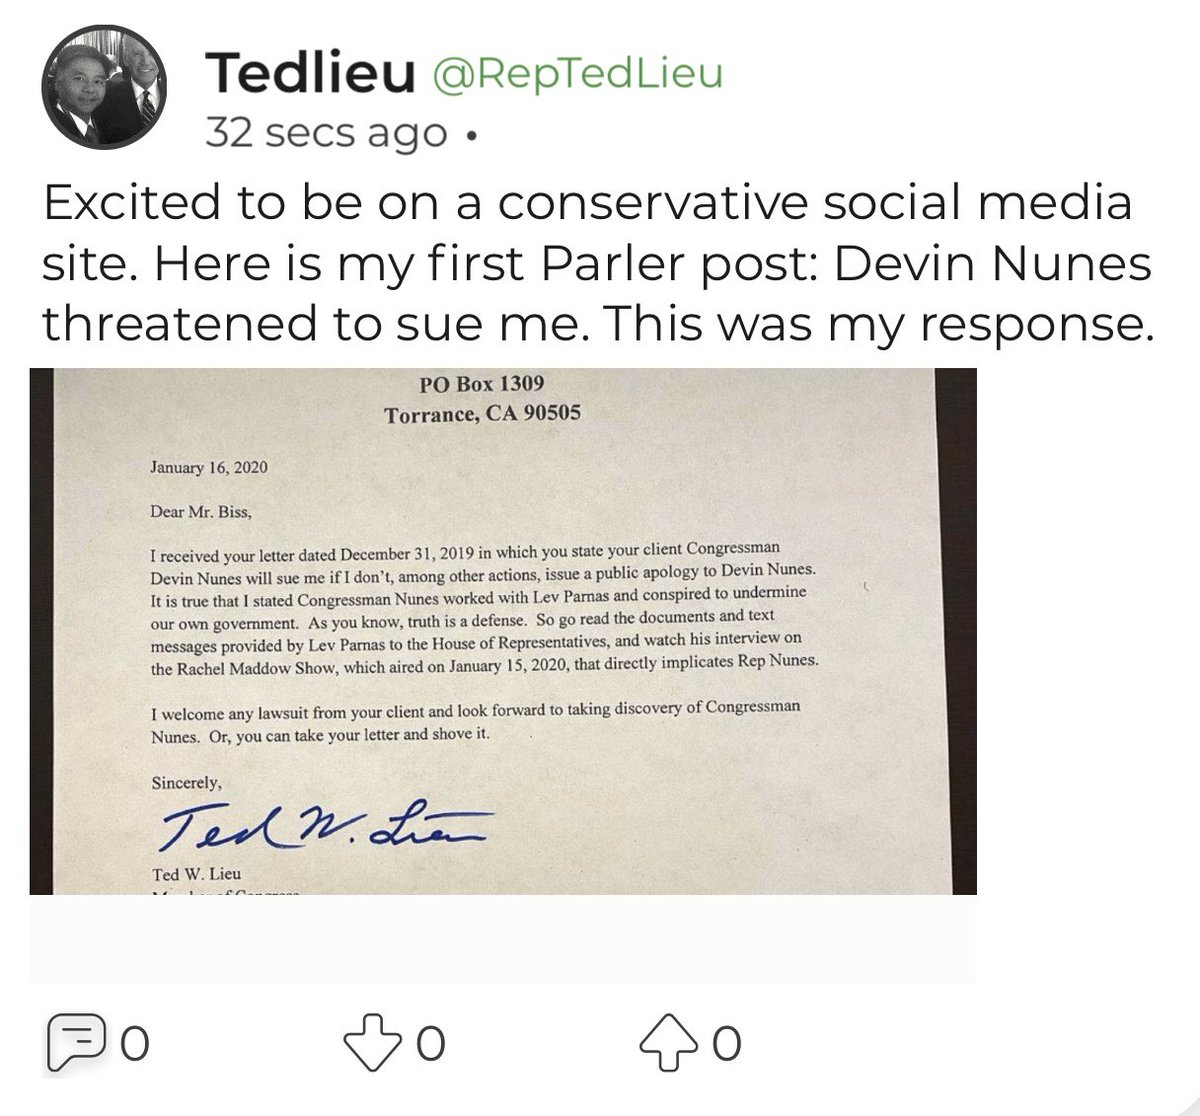 Today I posted my first Parler post. twitter.com/CNBC/status/12…